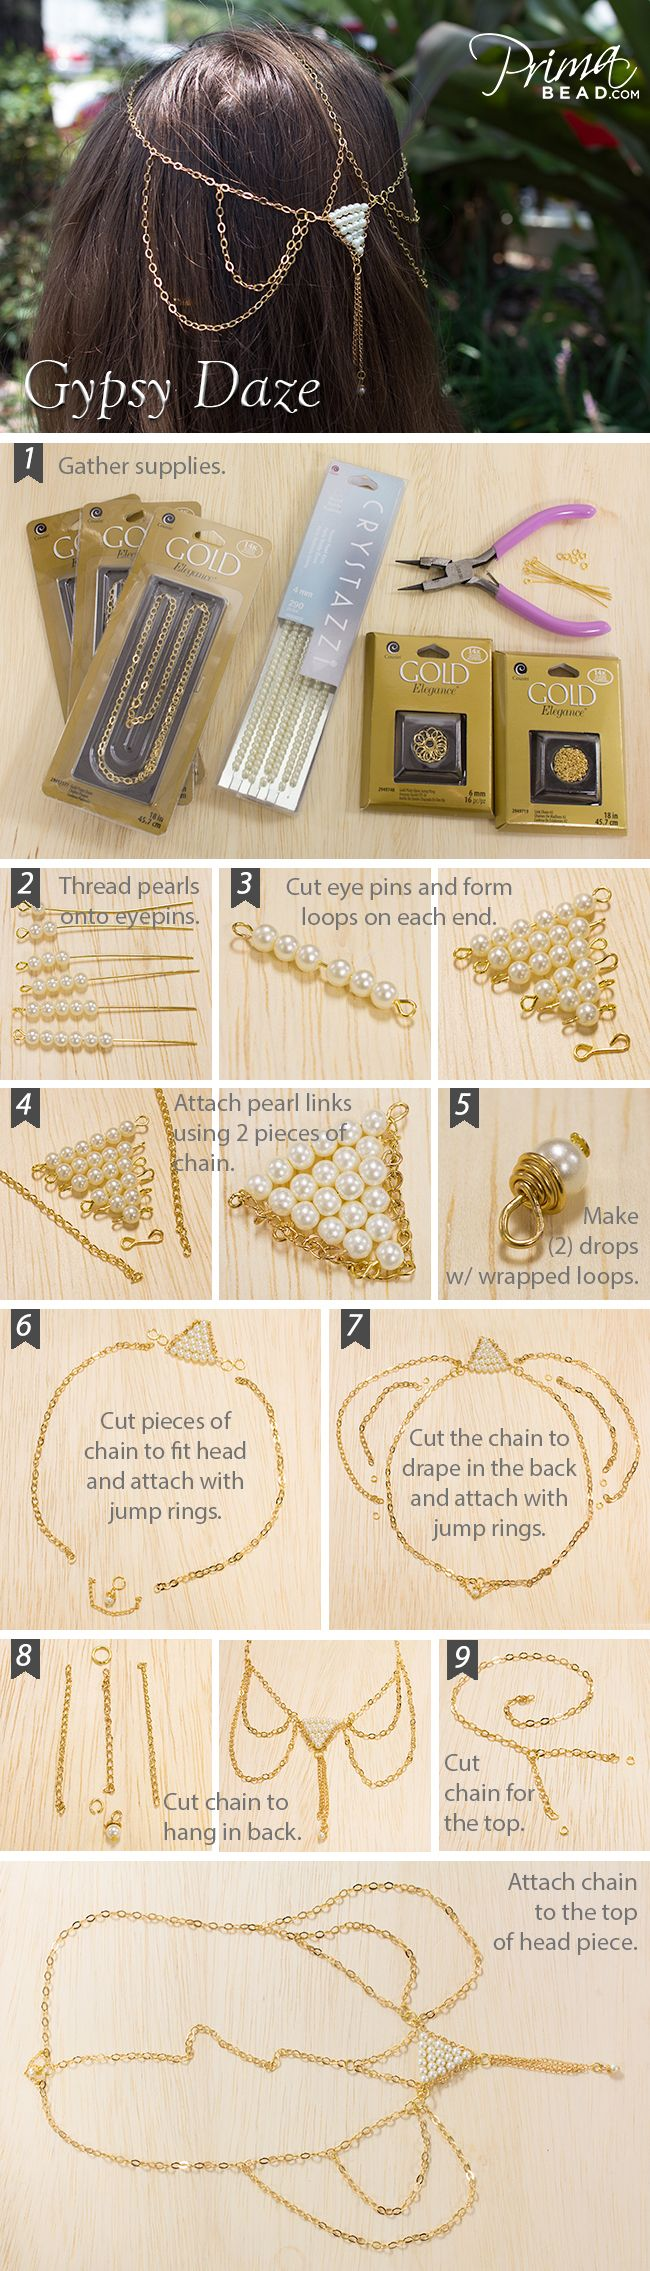 how to make your own hippie costume